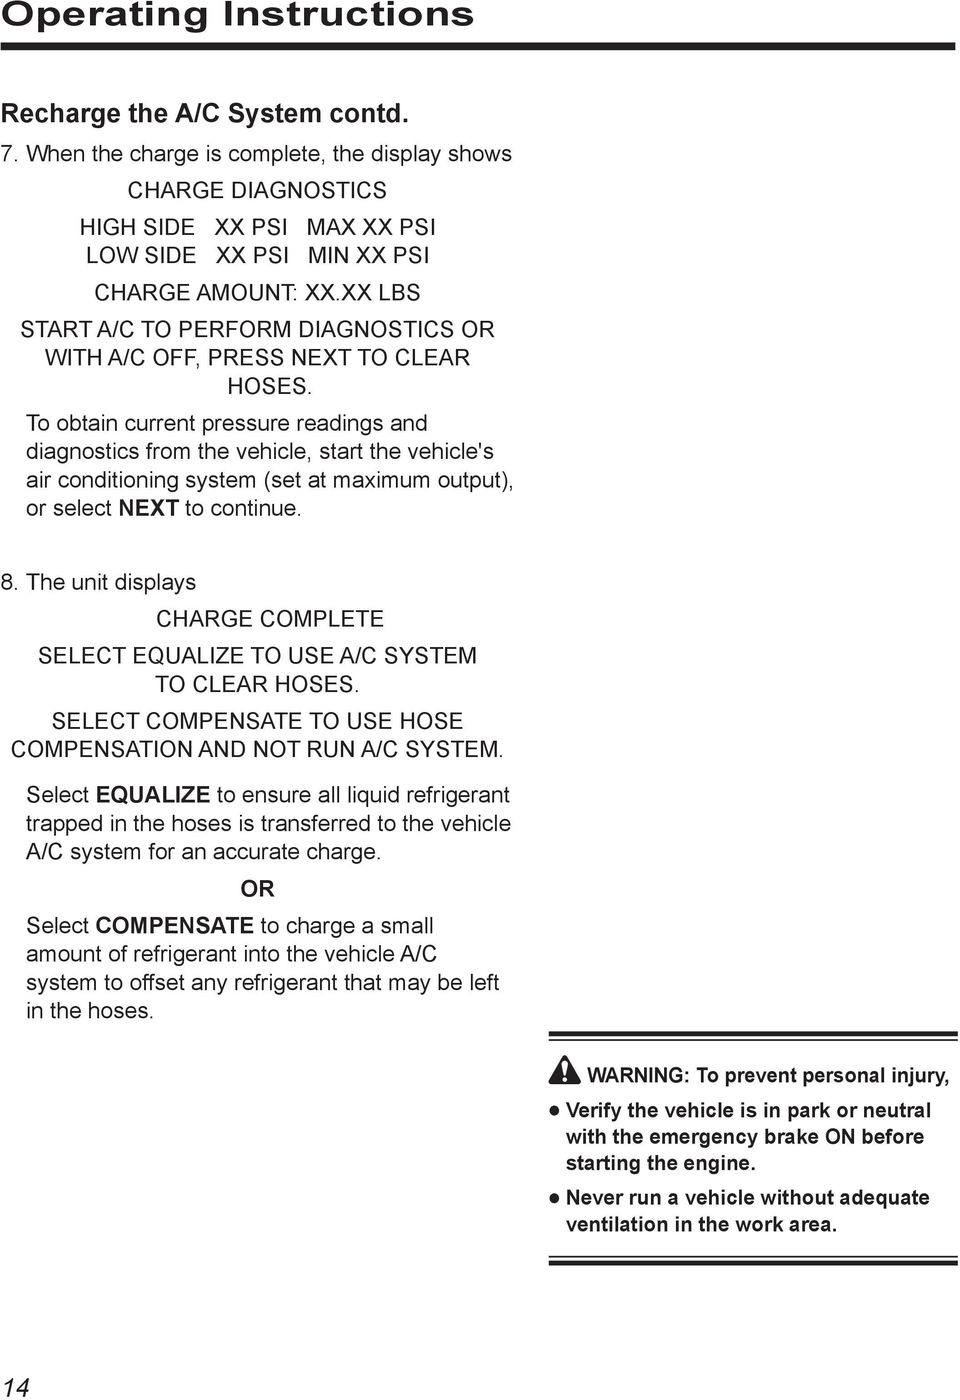 Operating Manual For Model Recovery Recycling Recharging Unit Pdf 34988 Robinair Ac Wiring Diagram To Obtain Current Pressure Readings And Diagnostics From The Vehicle Start Vehicles Air Conditioning